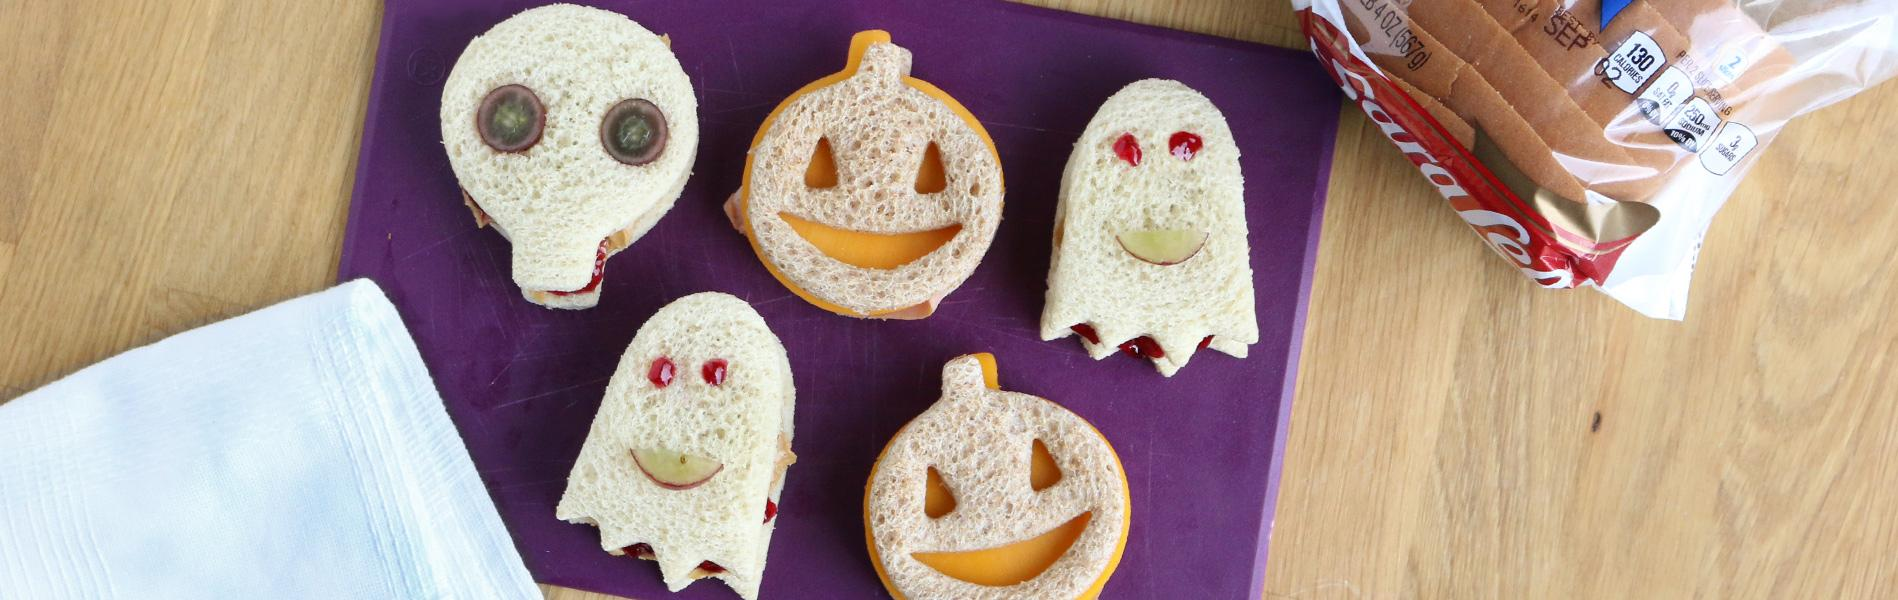 Assorted sandwiches shaped like ghosts, pumpkins and skulls